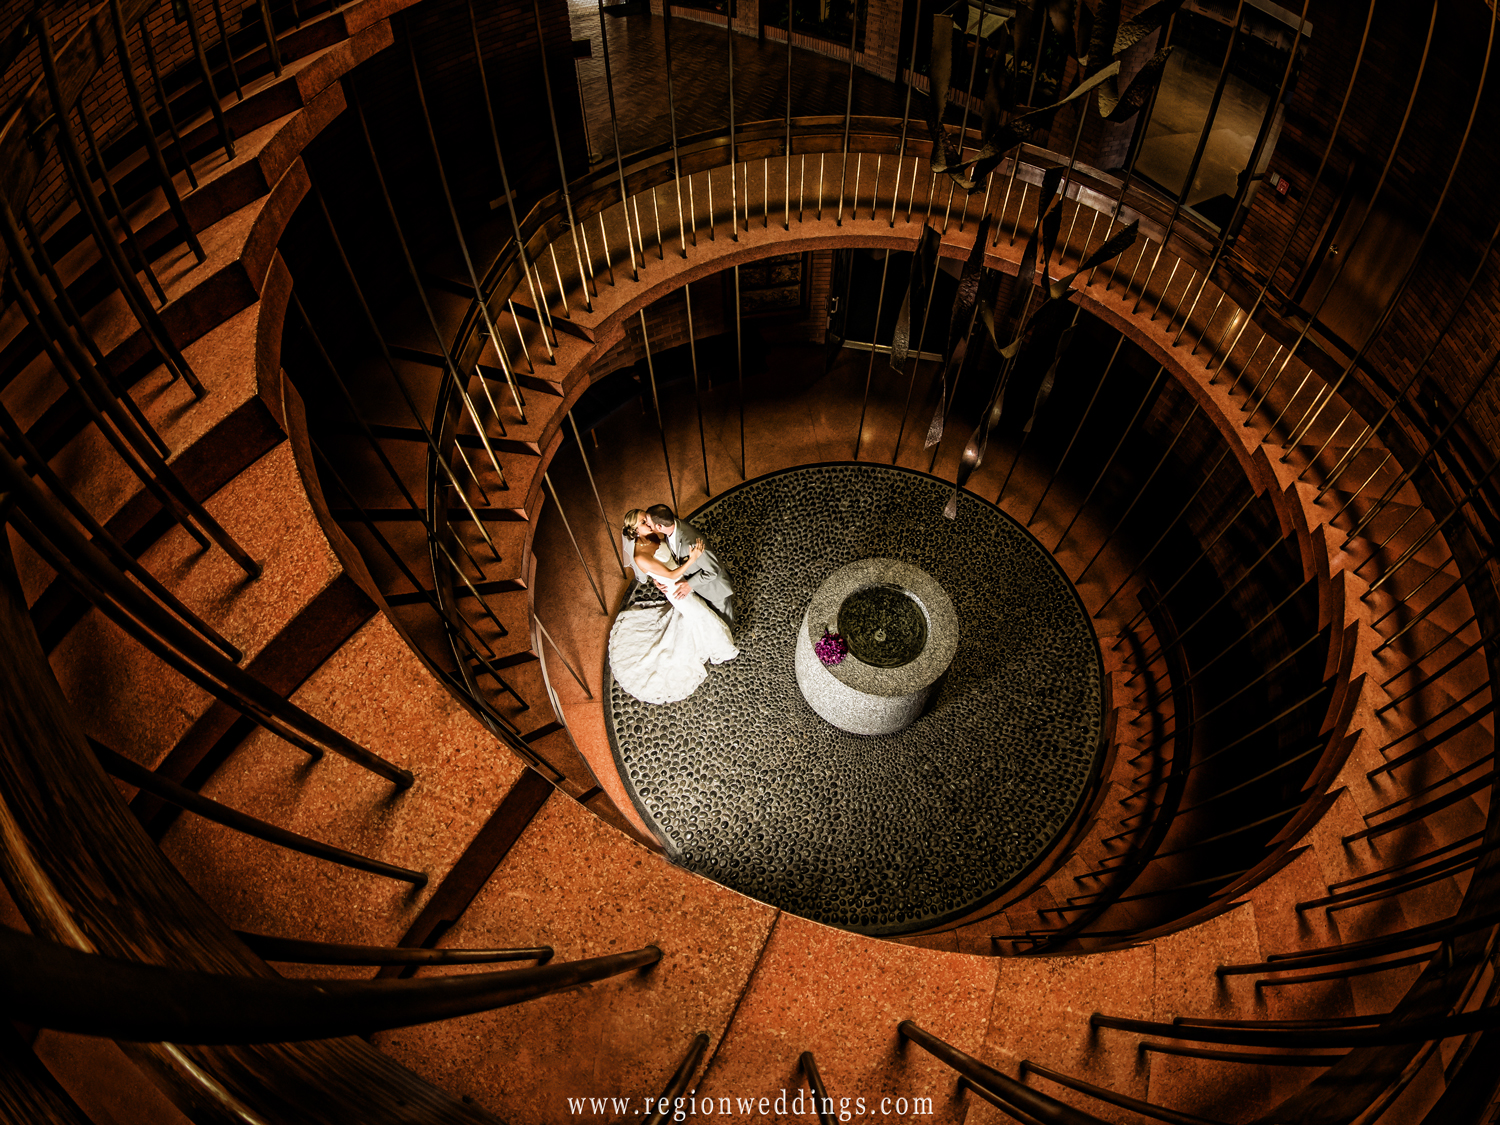 The iconic spiral staircase at The Chapel of the Resurrection at Valparaiso University